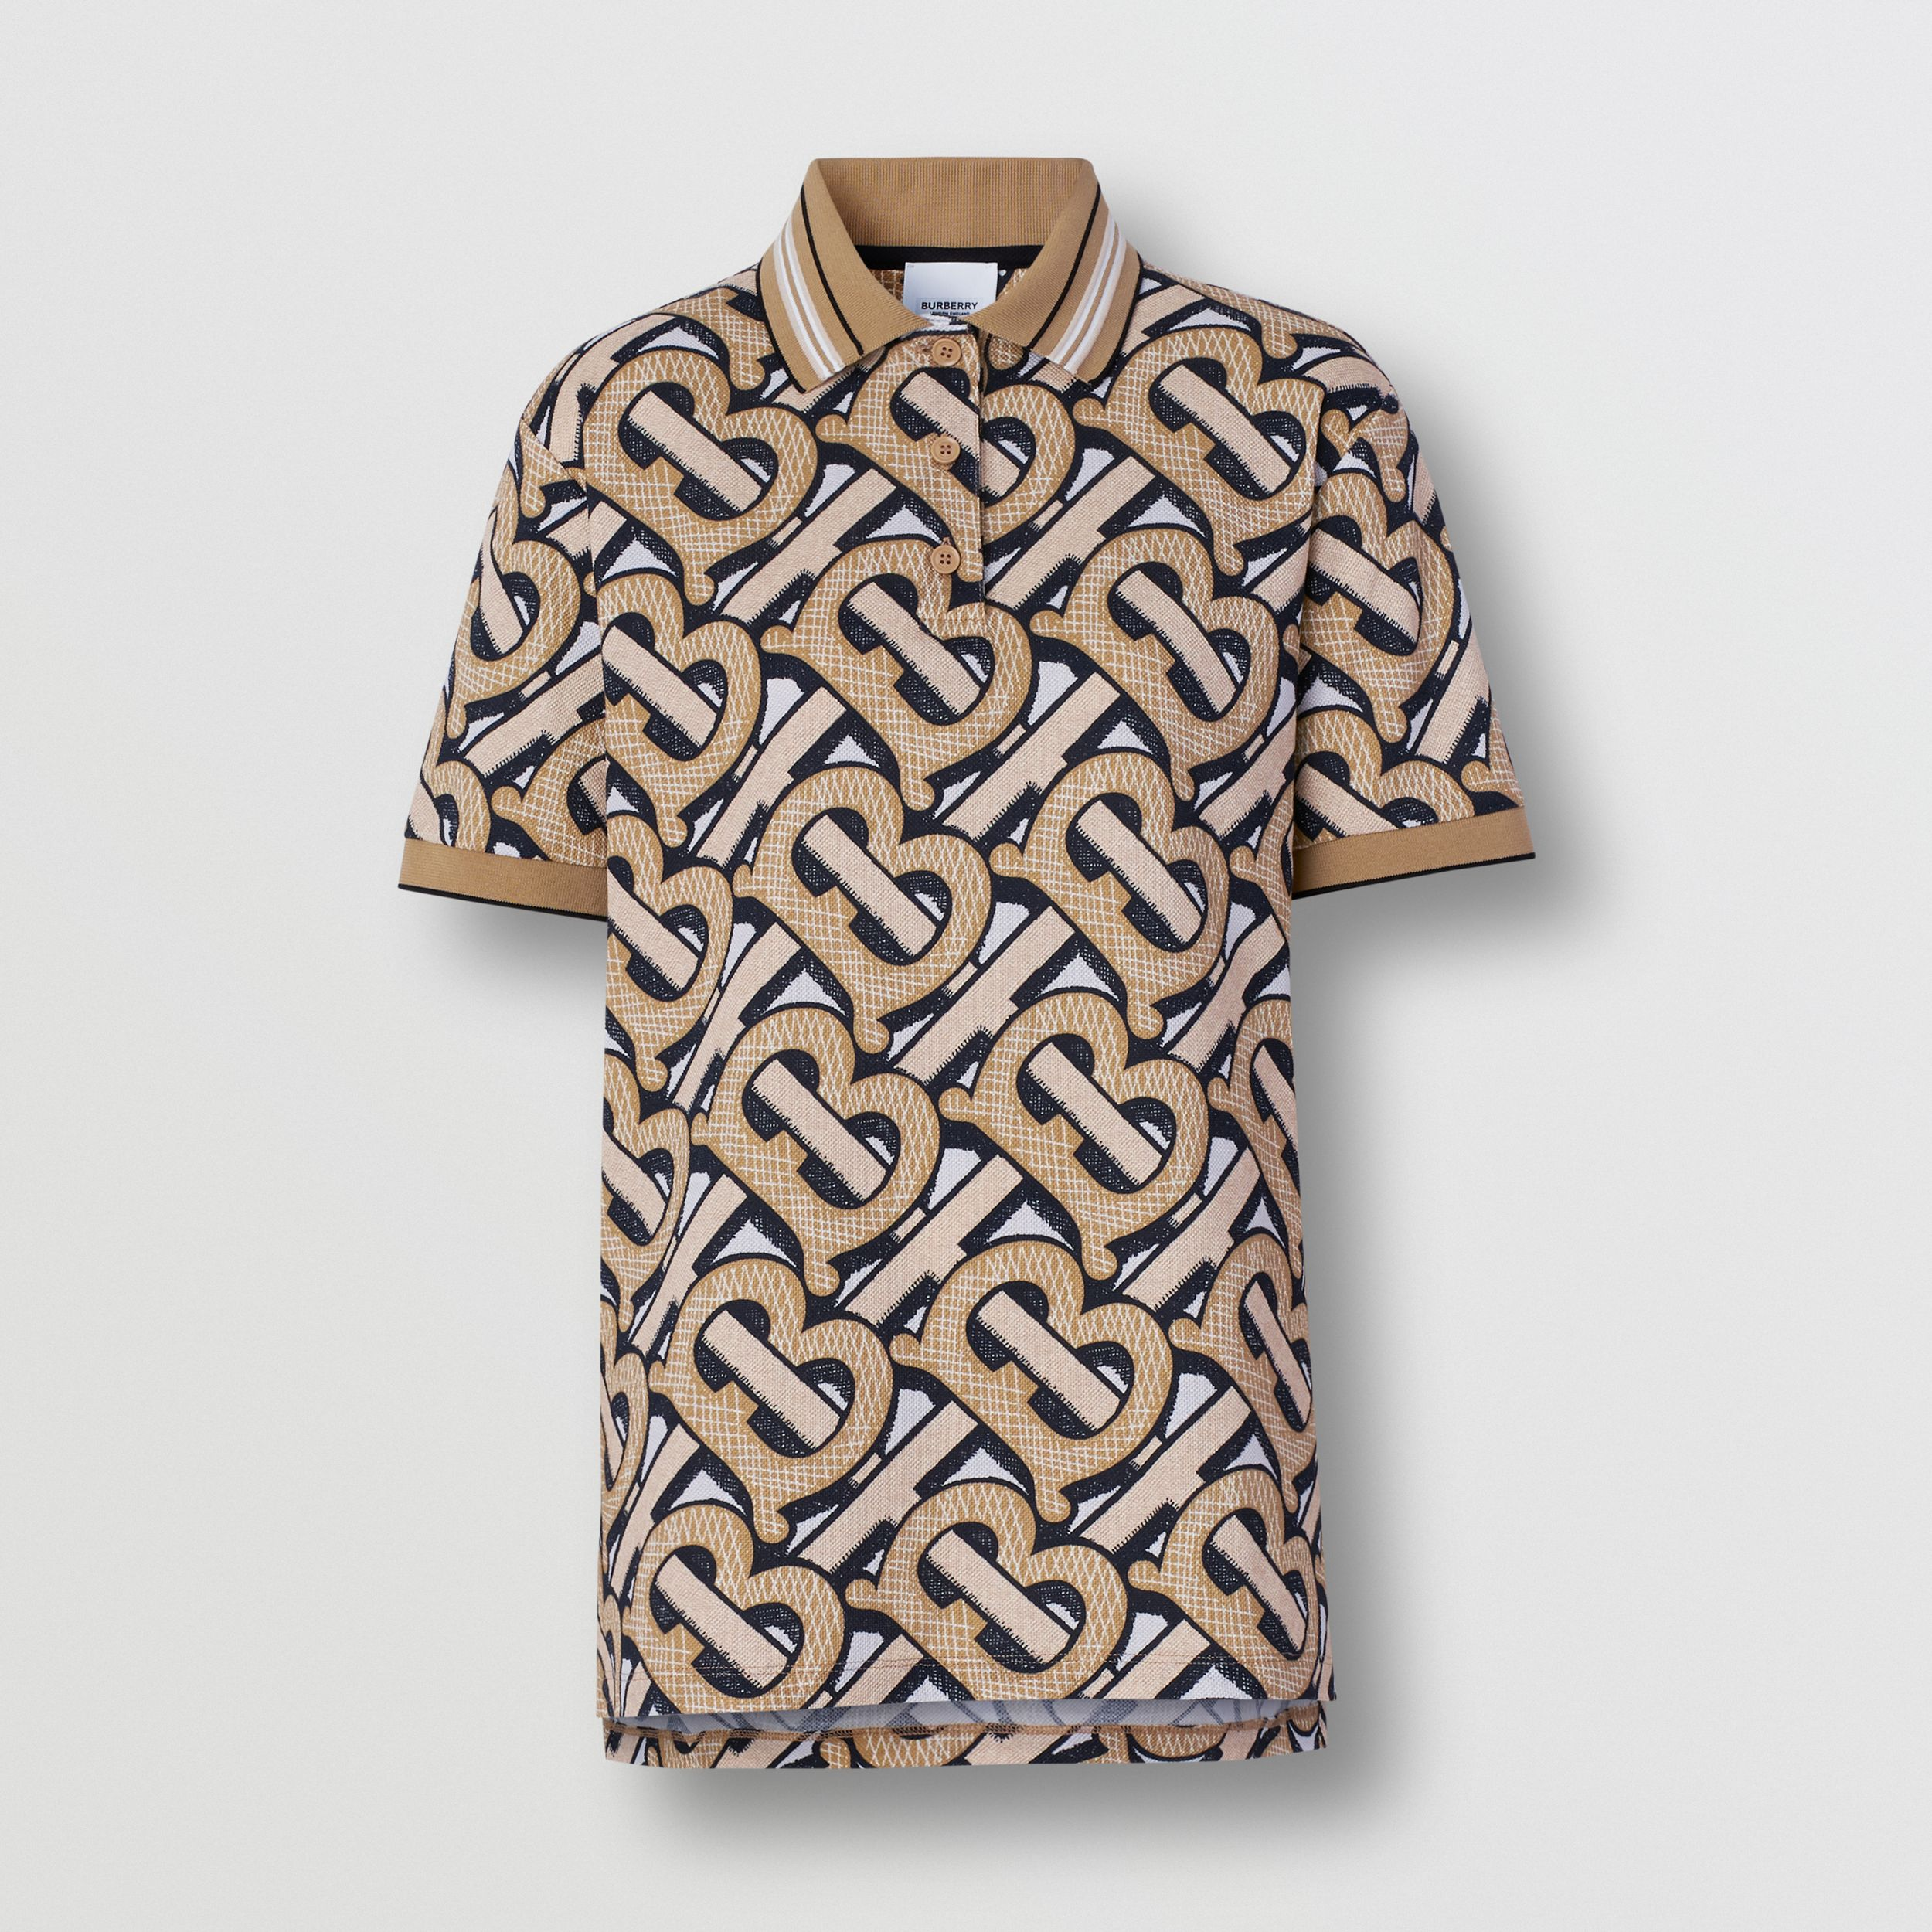 Monogram Print Cotton Piqué Polo Shirt – Unisex in Dark Beige | Burberry United States - 1